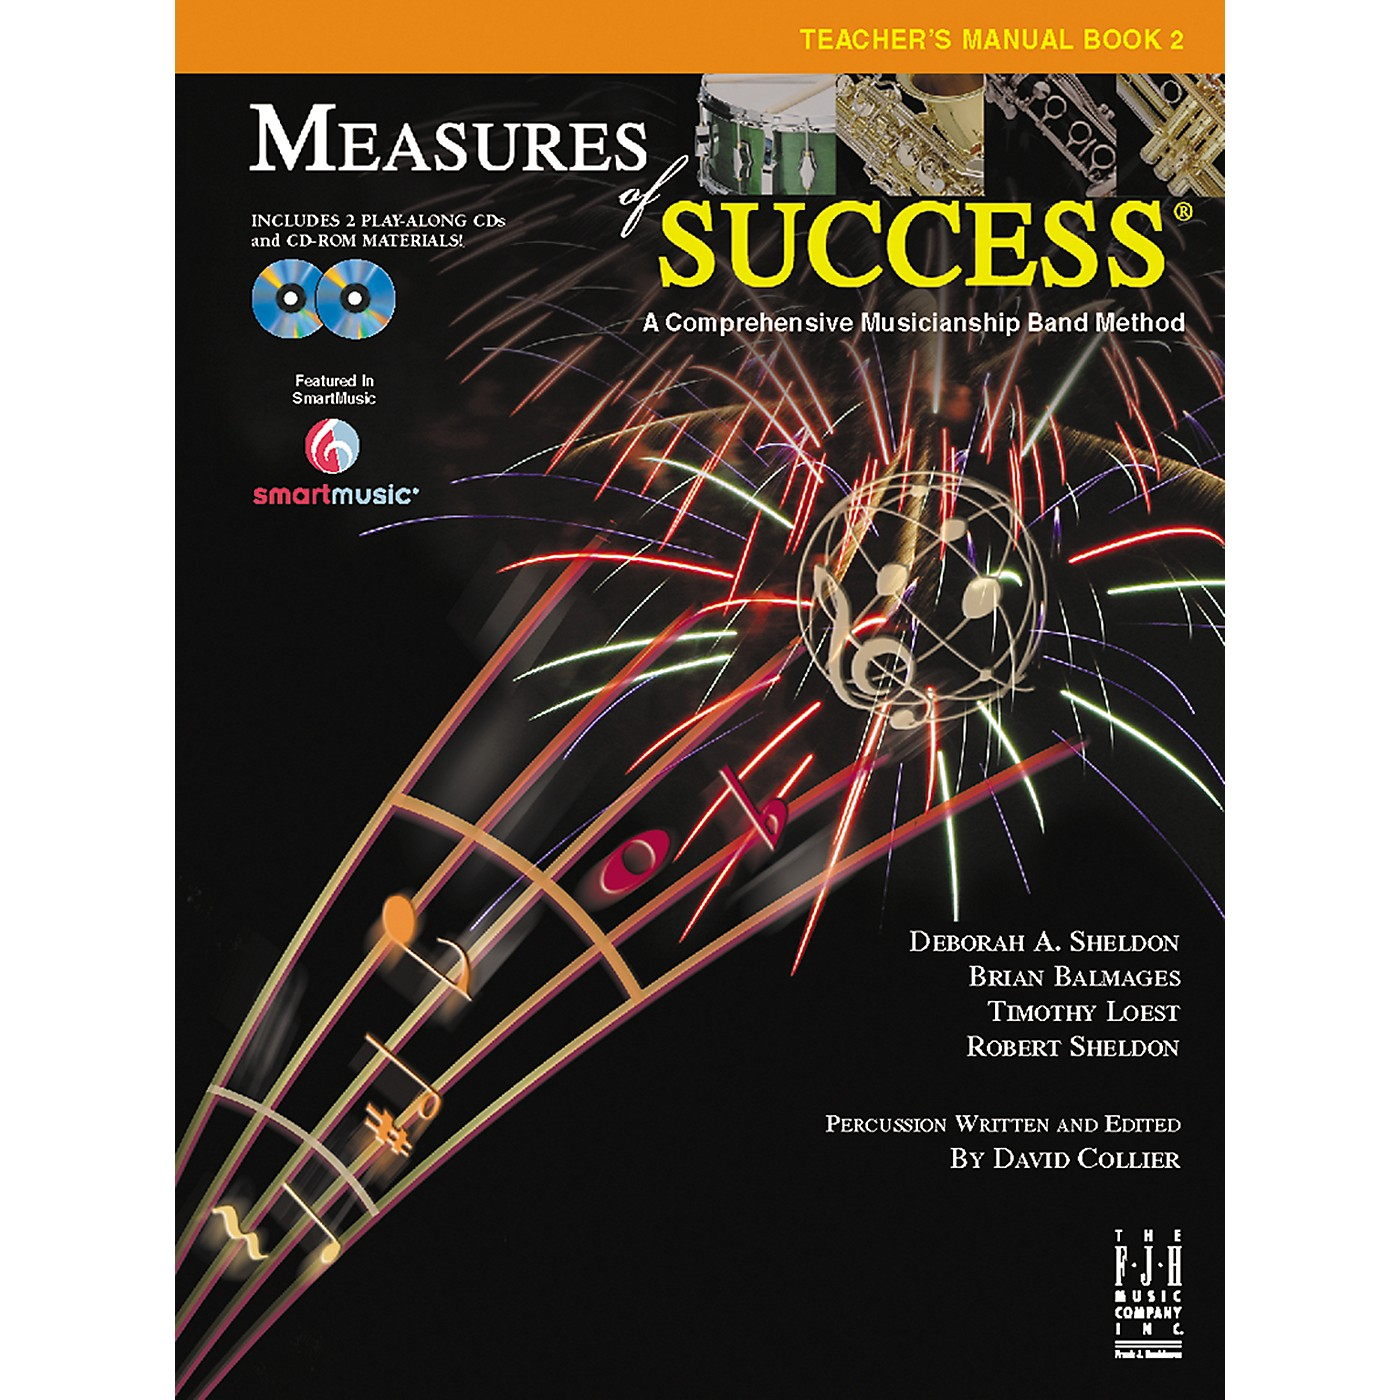 FJH Music Measures of Success Teacher's Manual Book 2 thumbnail